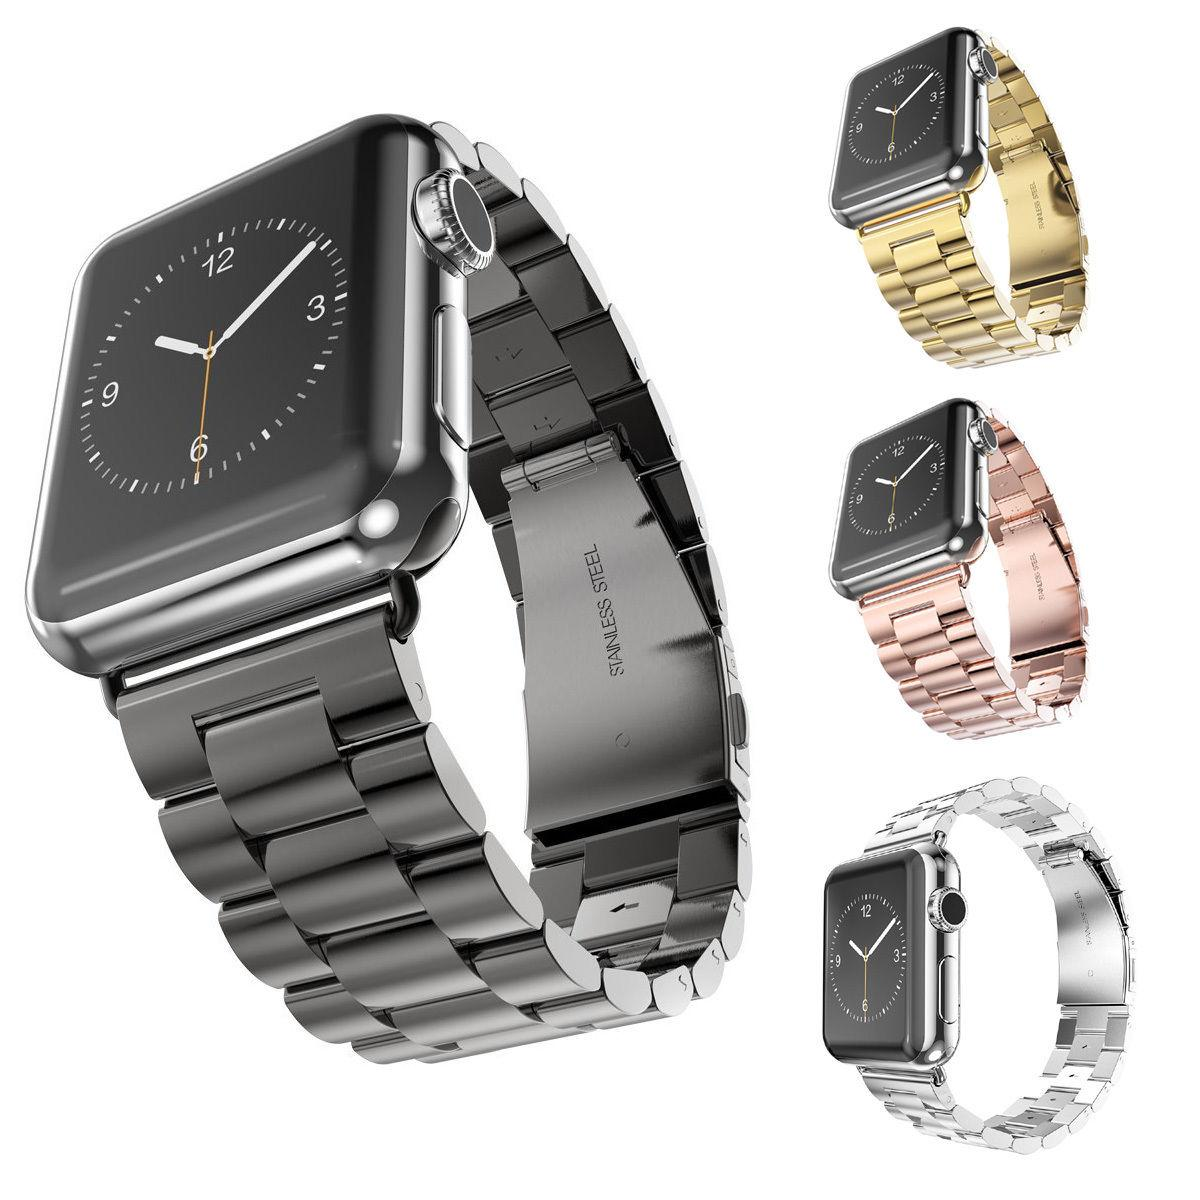 Stainless Steel Strap Band For Apple Watch Series 3 2 1 Sport 38mm Black Edition Silver Gold Watchband 42mm Iwatch Straps Rubber